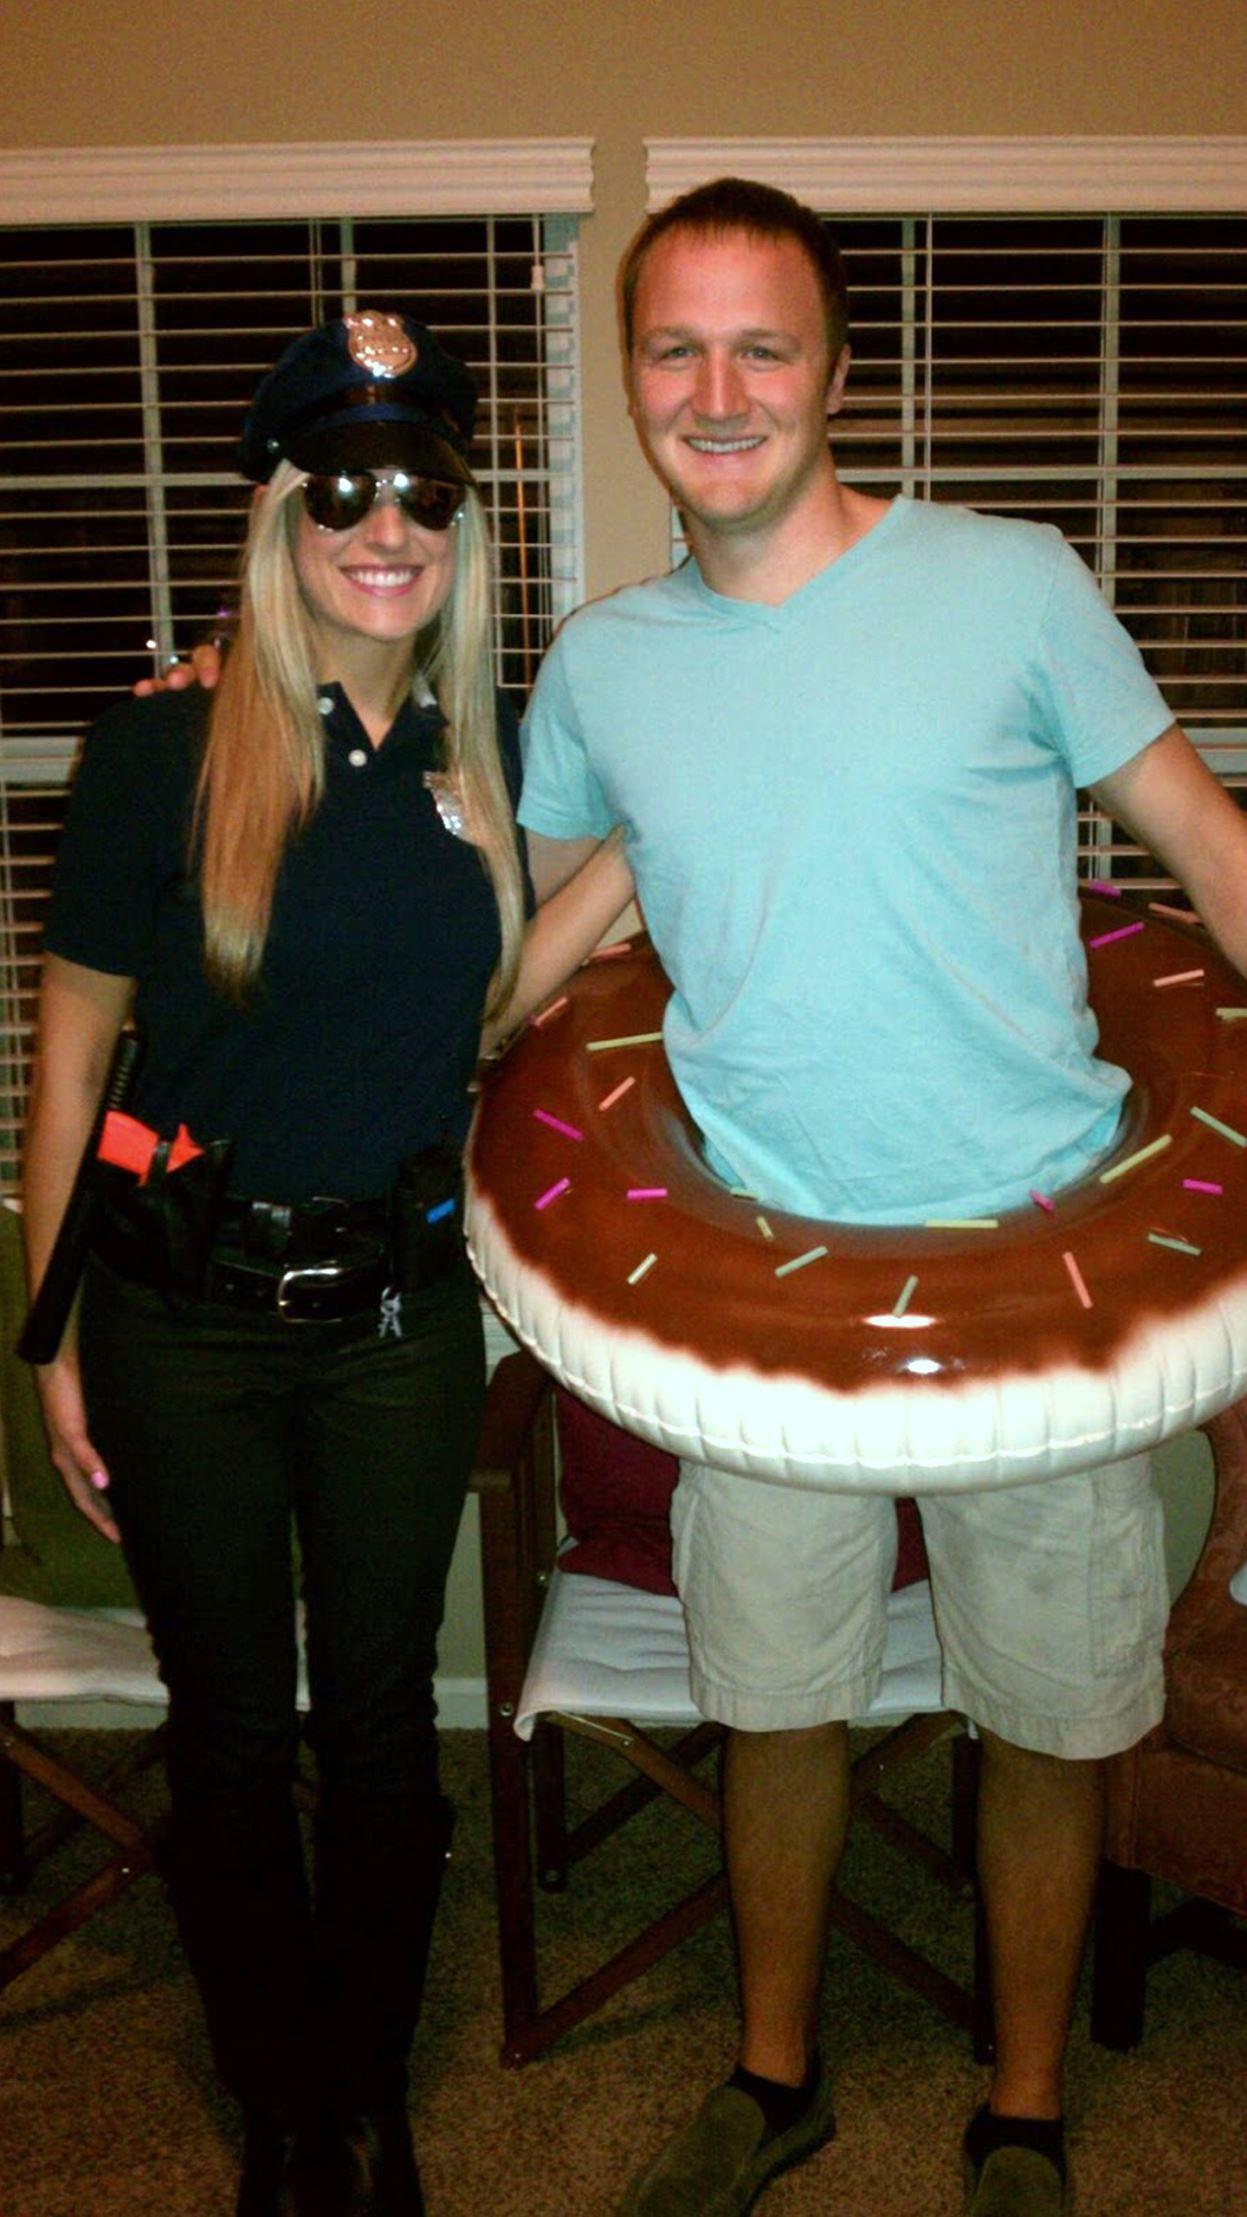 15 funny halloween costumes for couples | costume ideas | pinterest